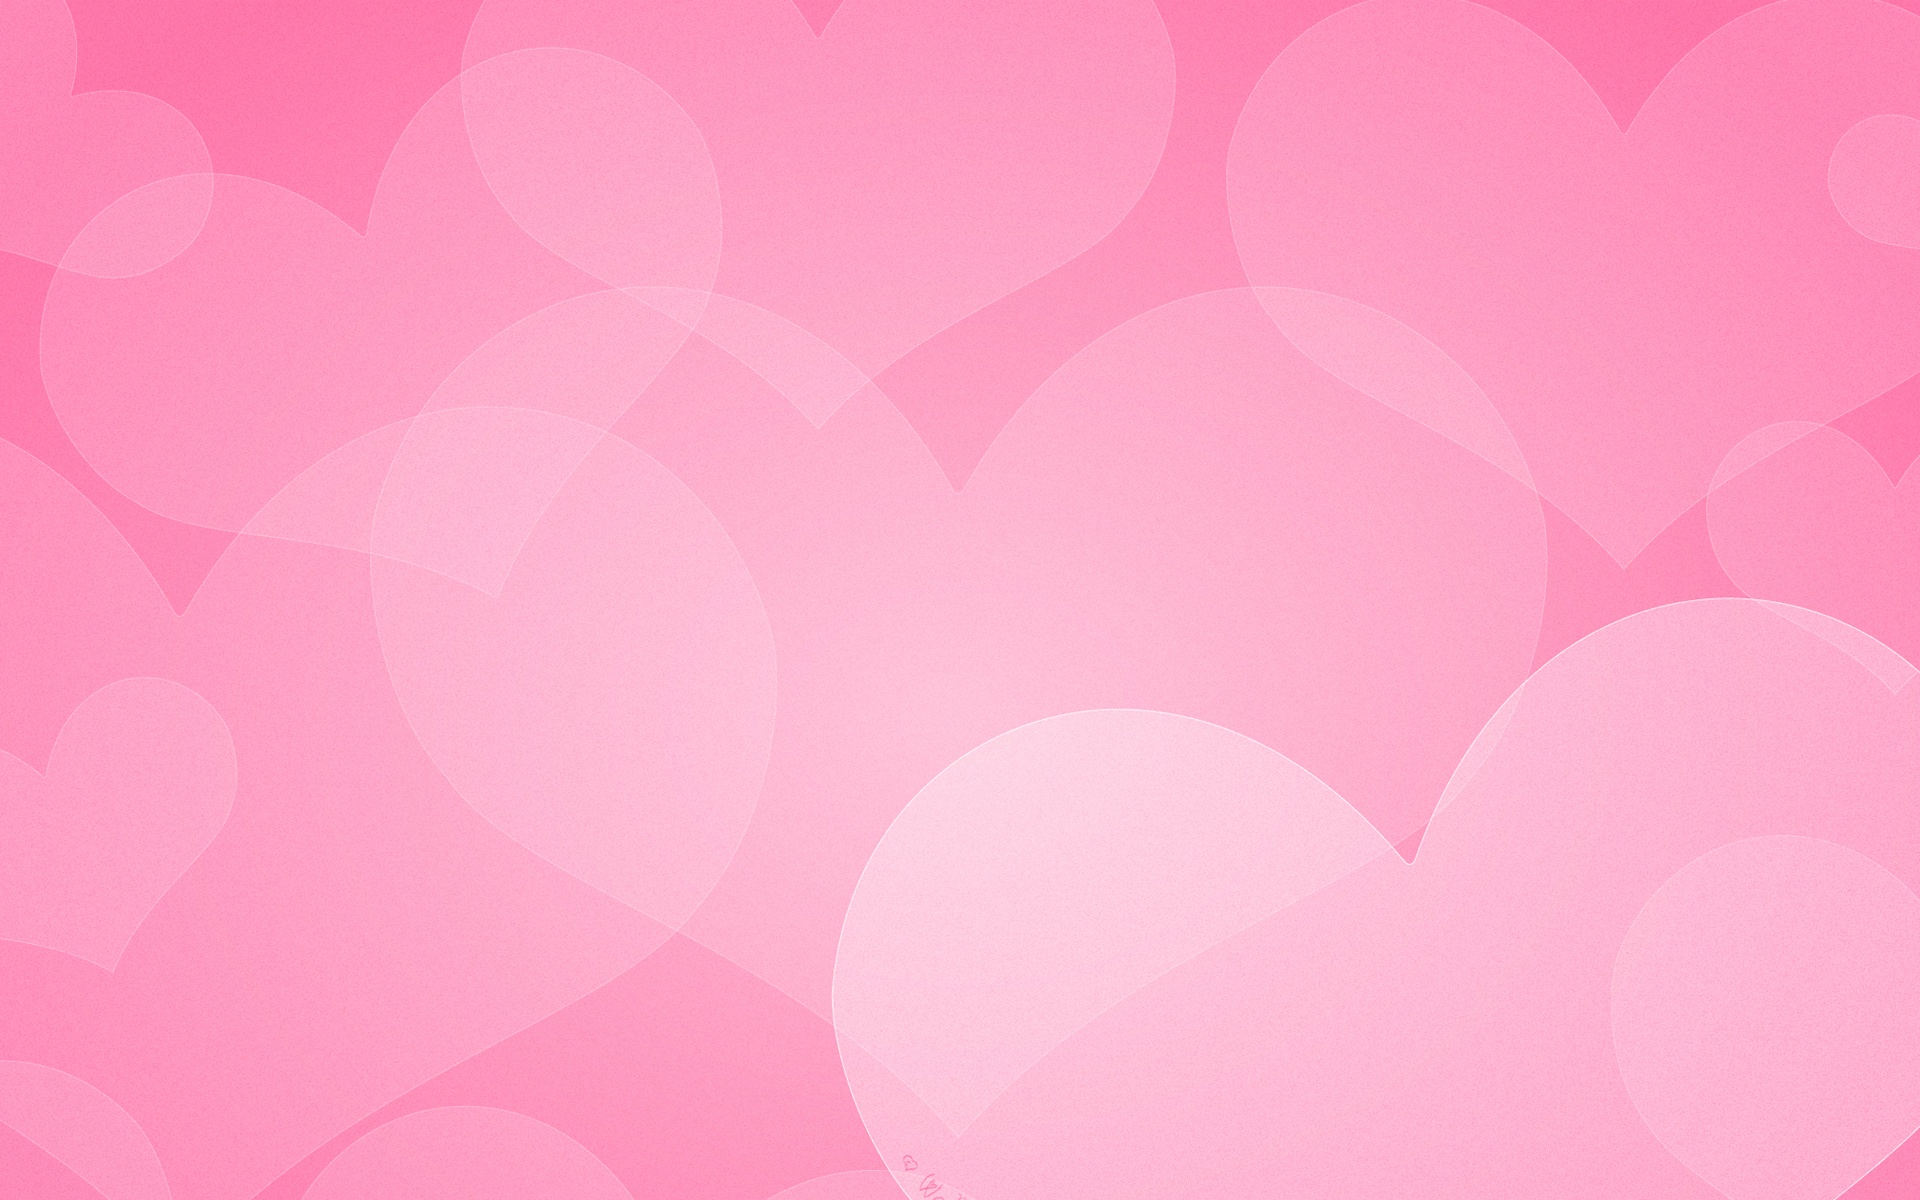 Hearts Wallpaper